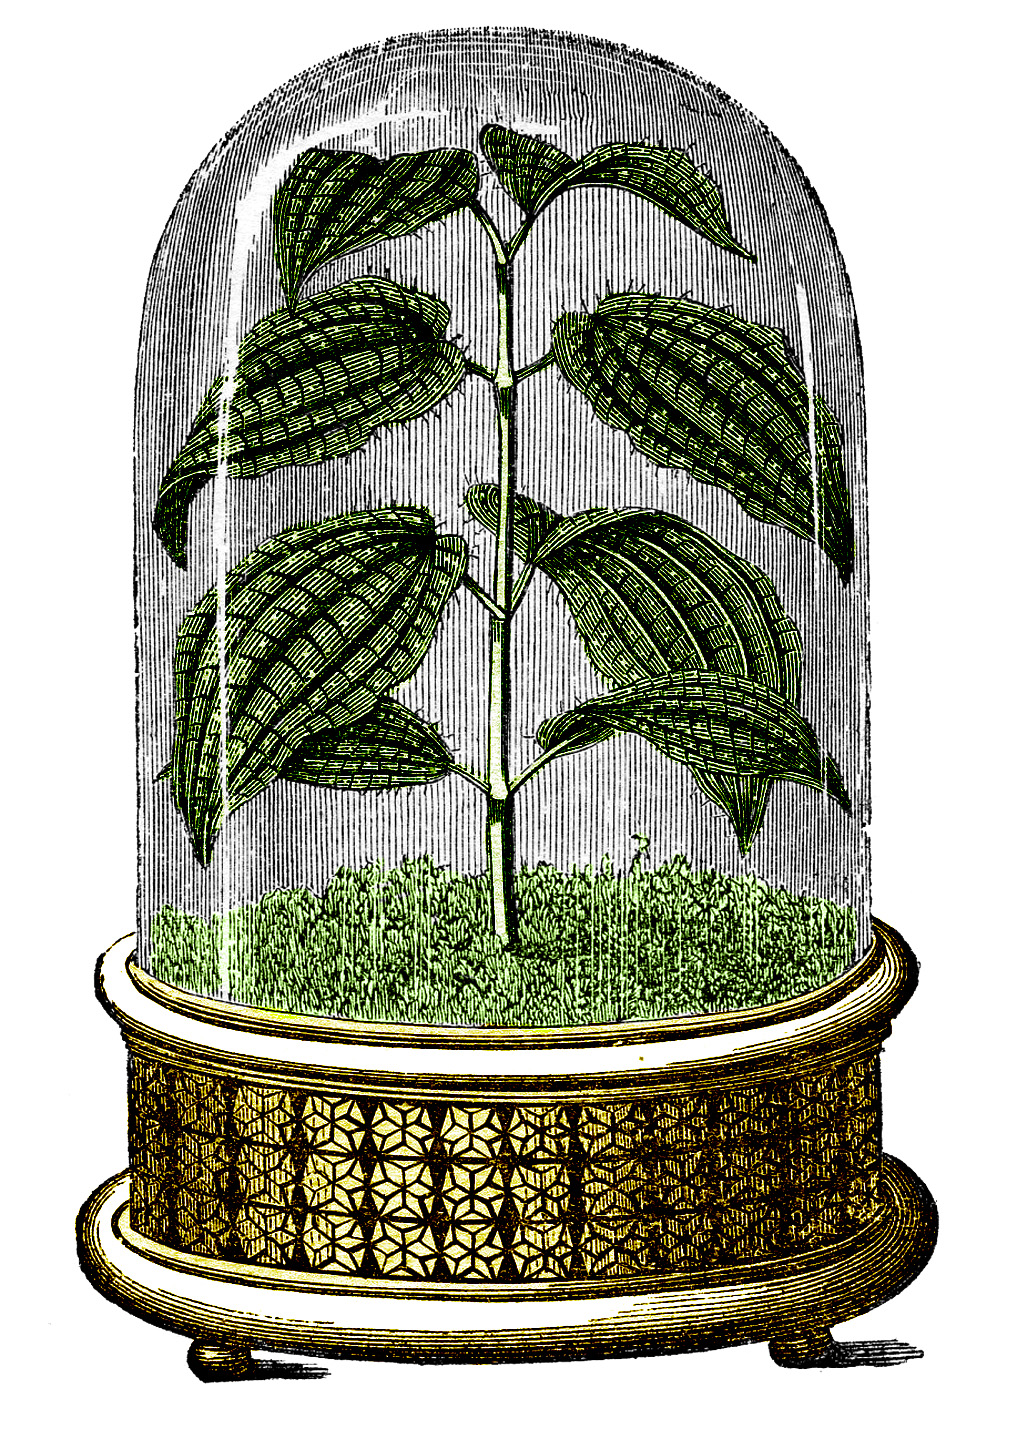 Vintage Cloche Image with Plant